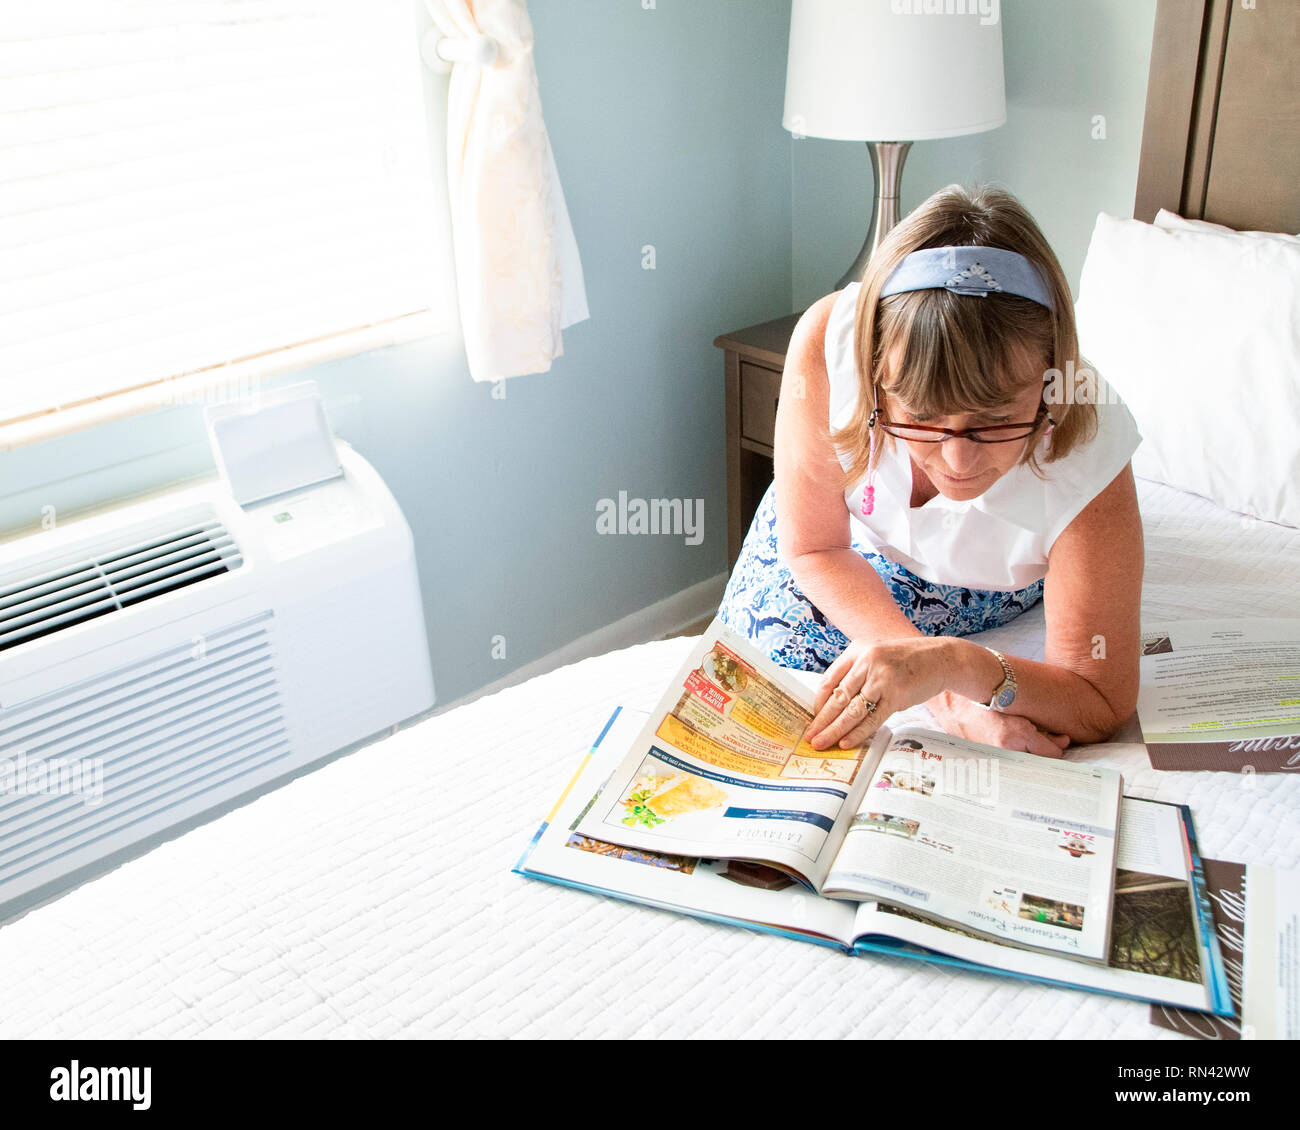 Senior woman sitting on a bed in a hotel looking at travel magazines.  Planning her day. - Stock Image